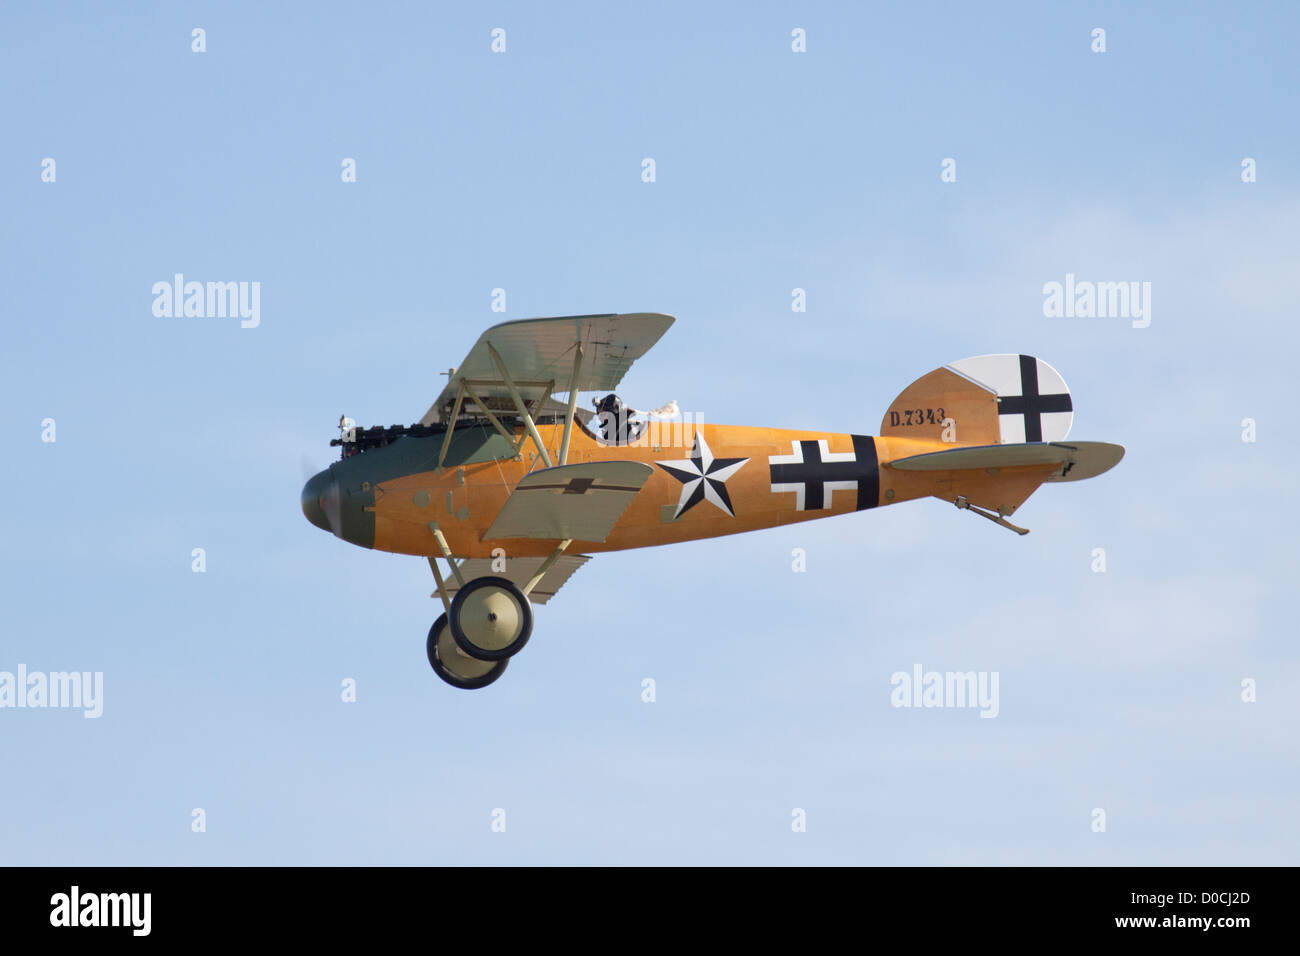 World War 1 Albatros D.Va First World War German Fighter Aircraft on a fly past. - Stock Image